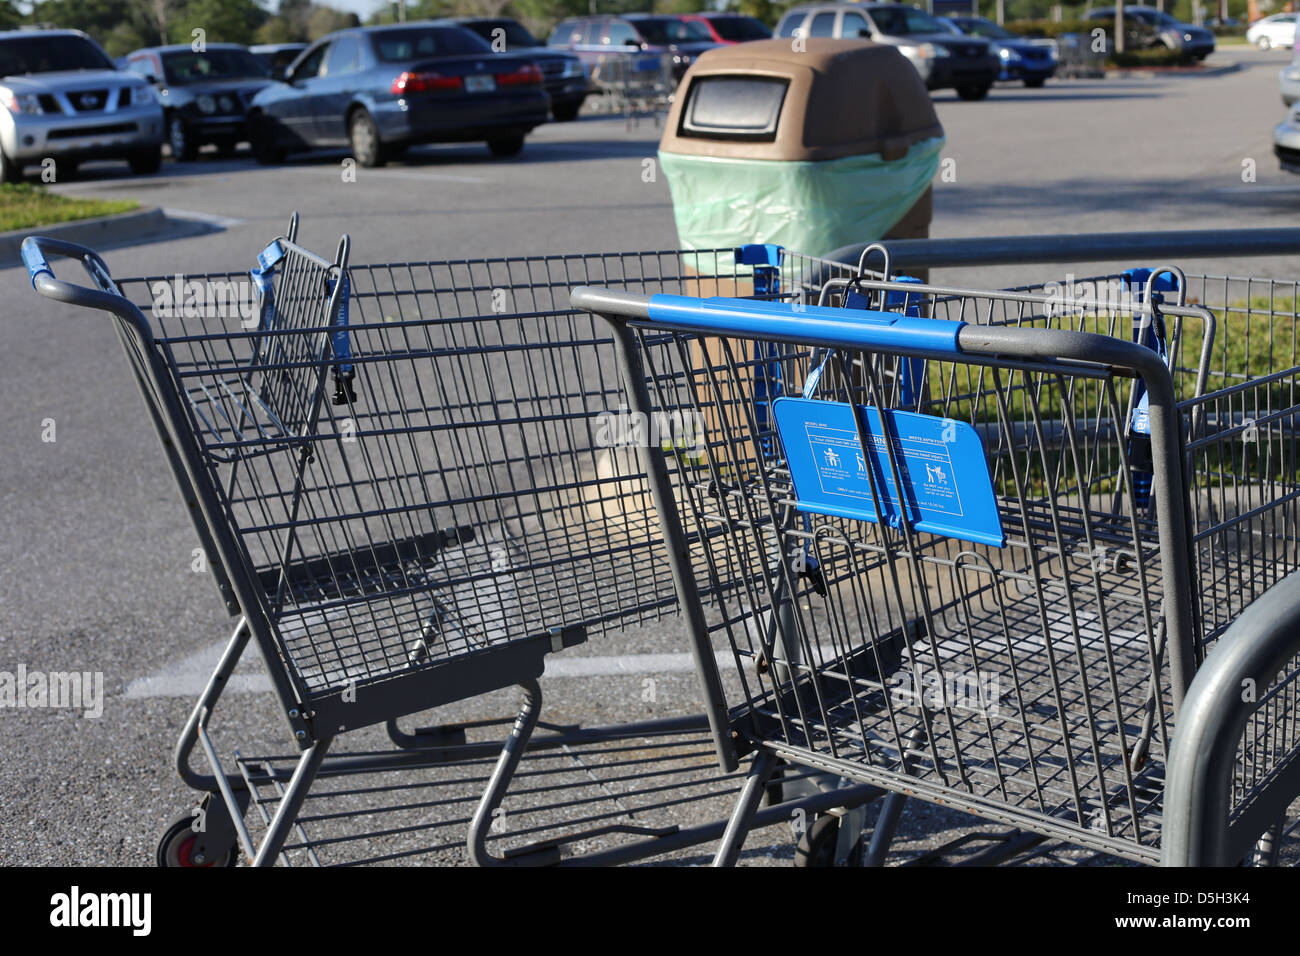 Shopping carts and a garbage can in a Walmart parking lot in the USA - Stock Image